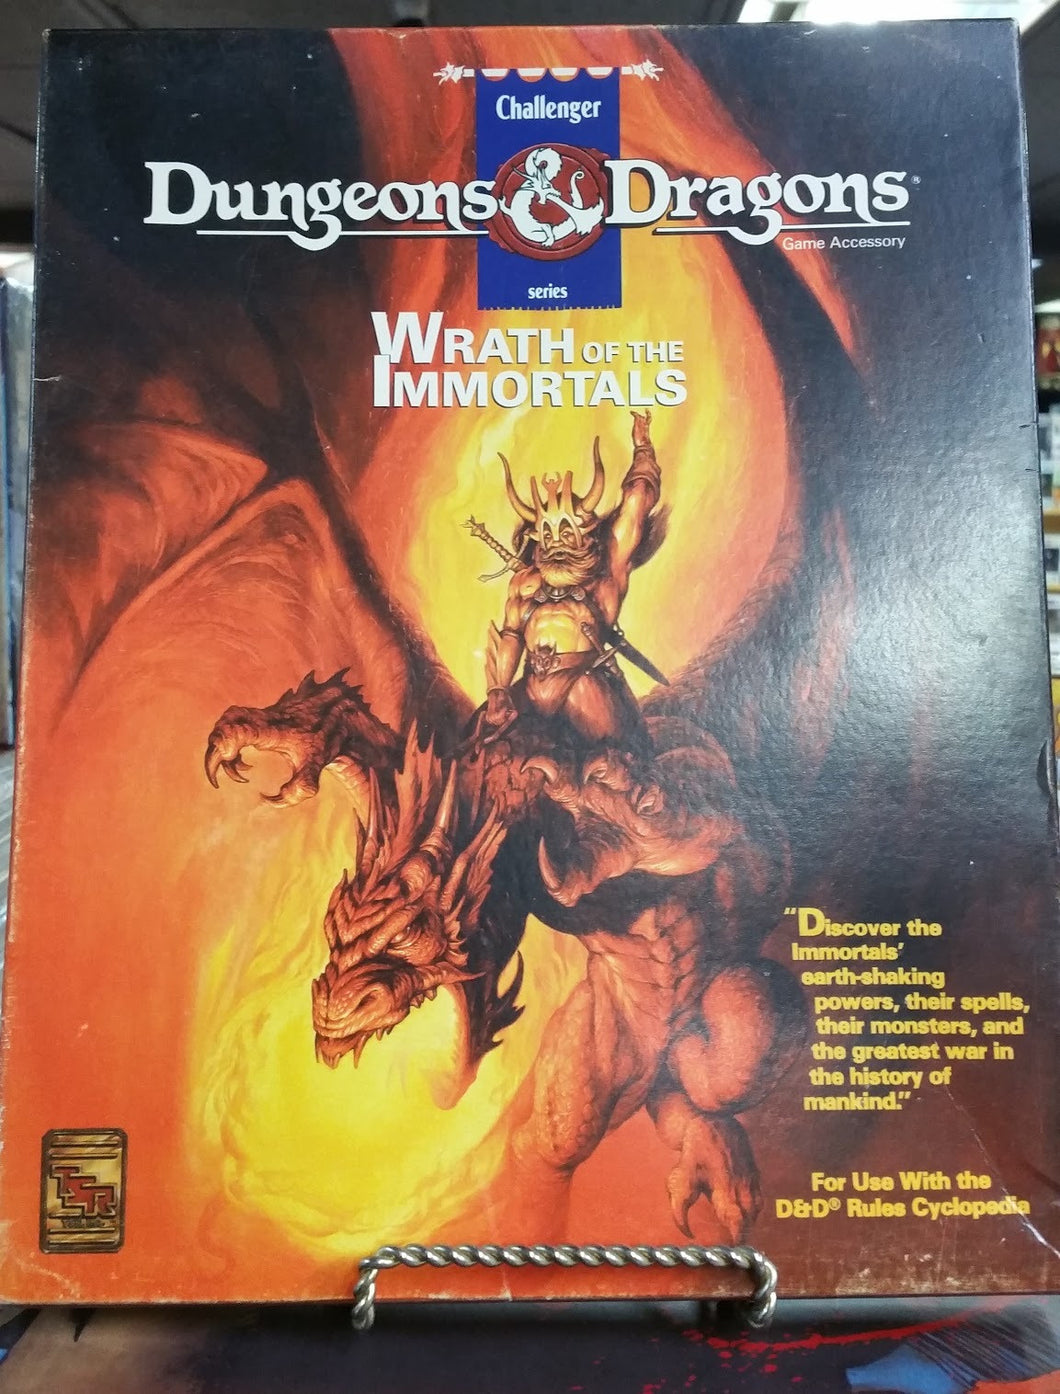 Dungeons & Dragons - Wrath of the Immortals